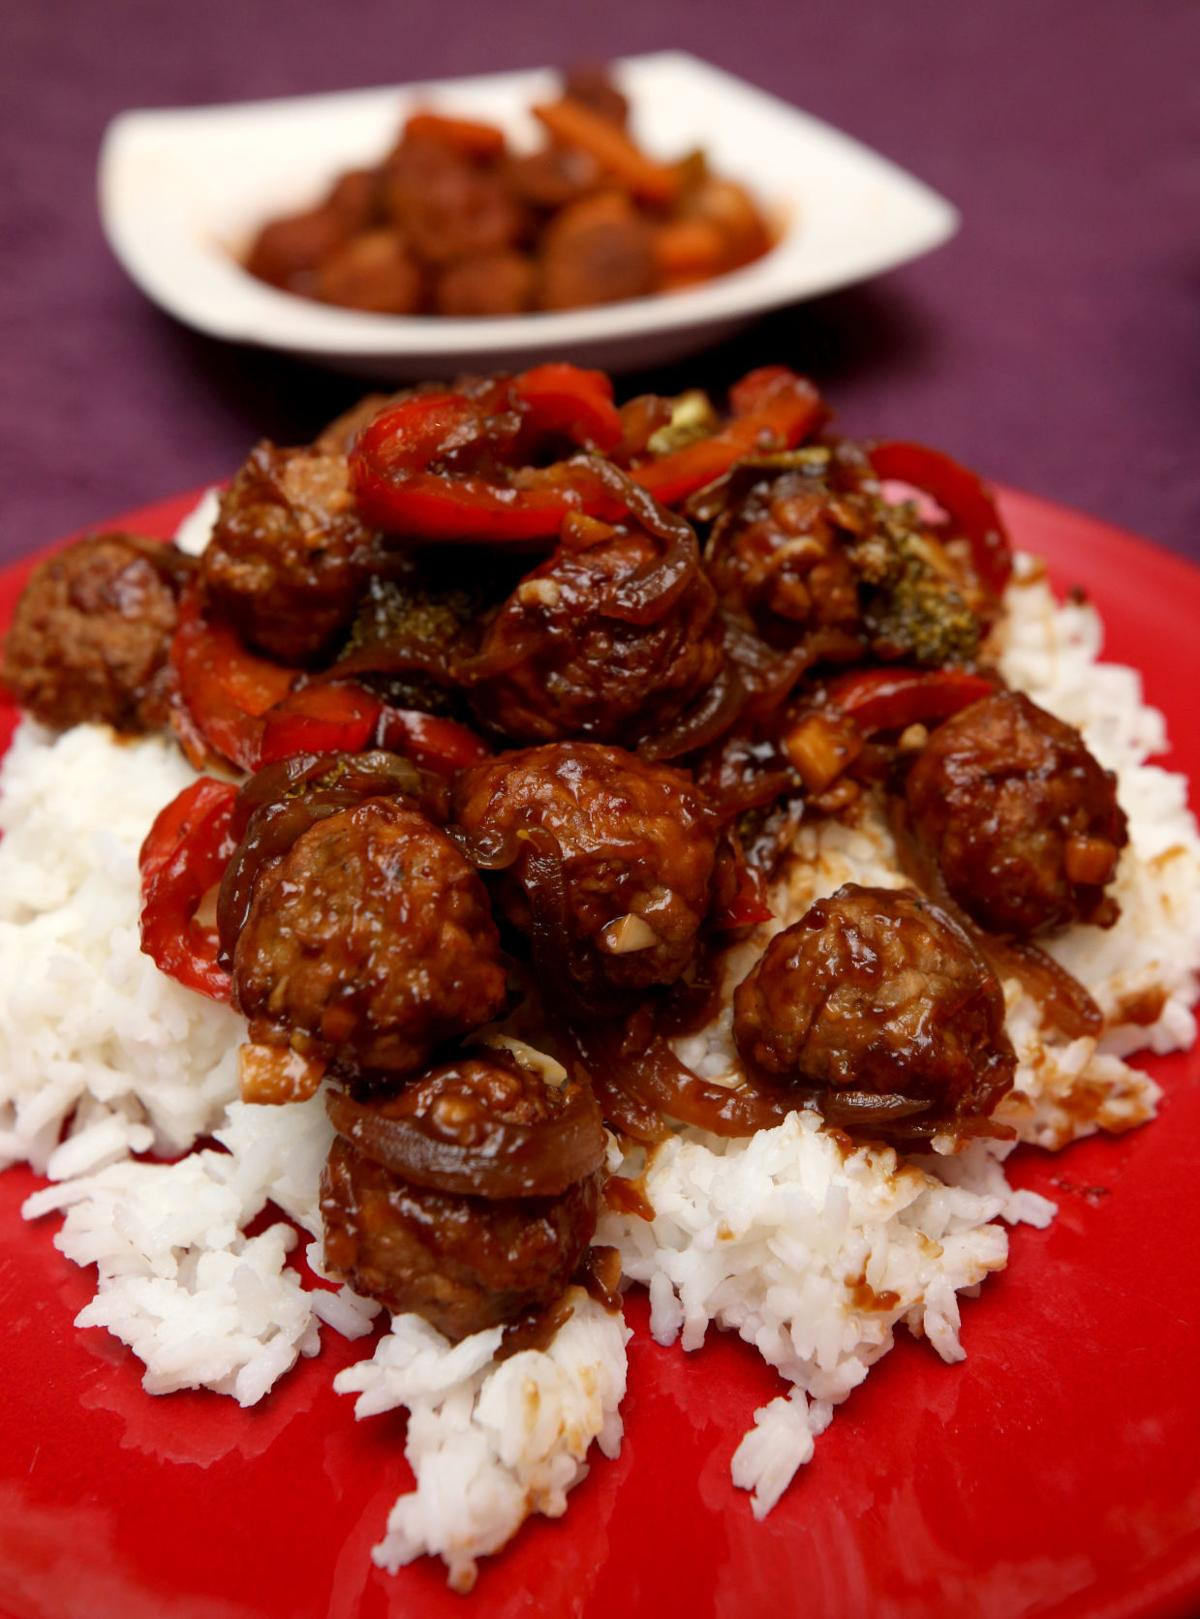 Frozen meatballs make weeknight dinners a snap